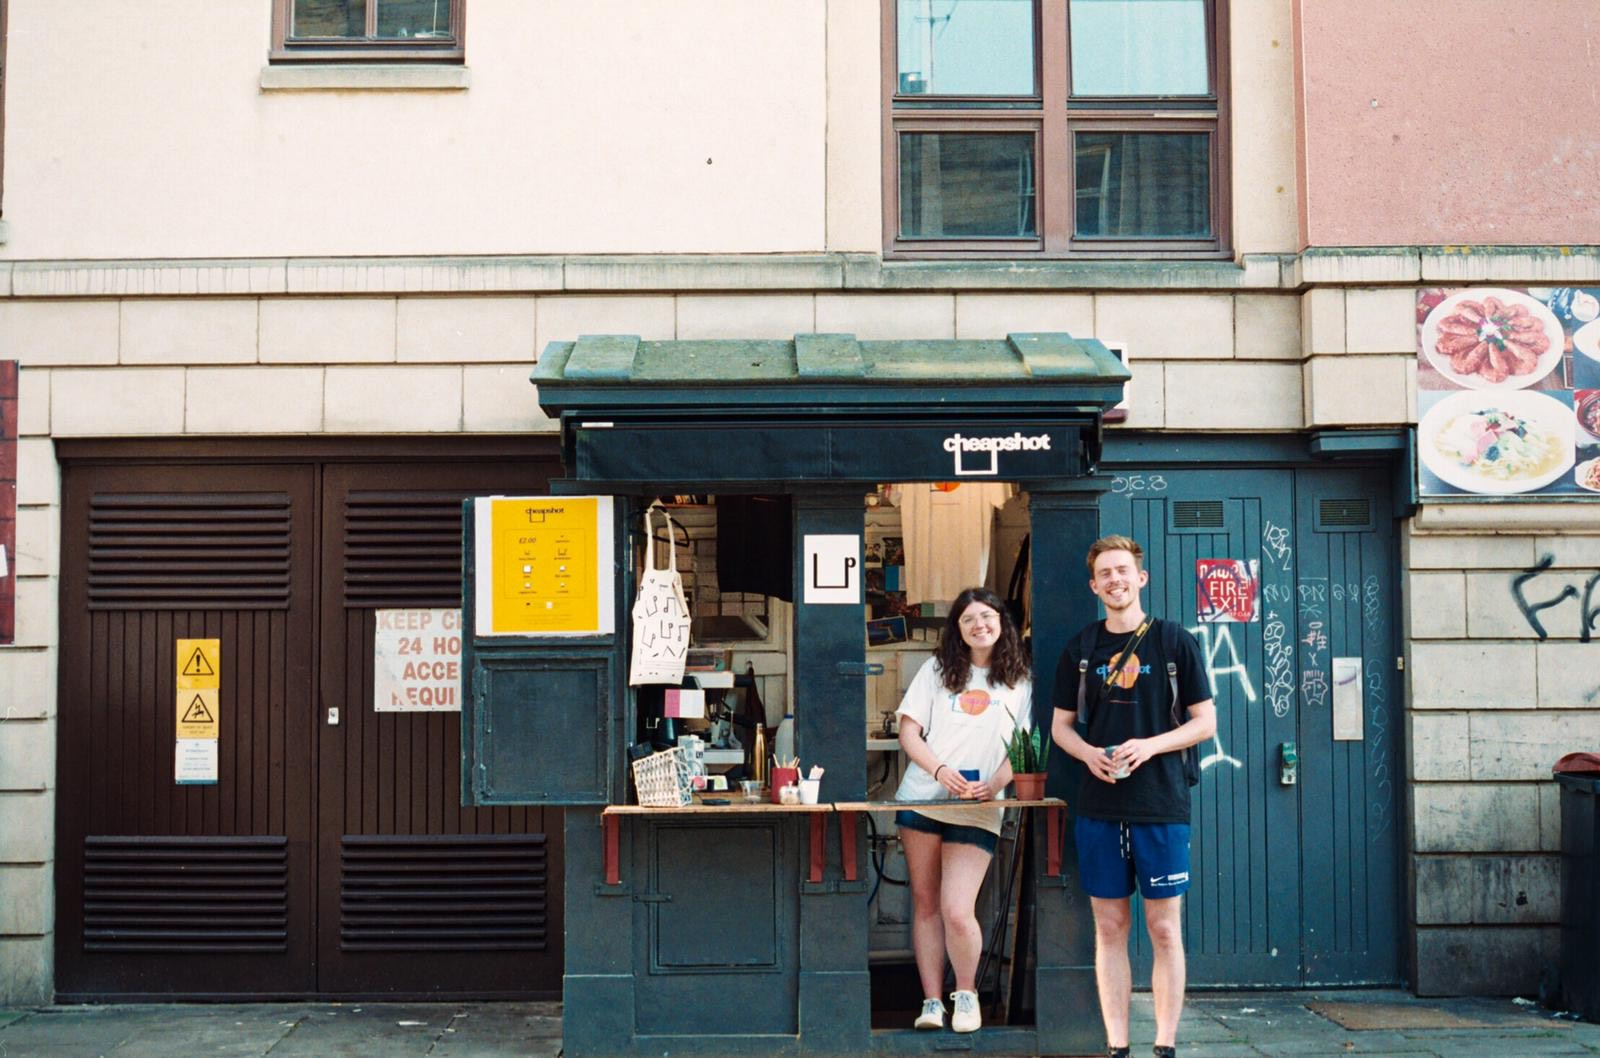 Two people standing in front of the Cheapshot police box cafe on a street